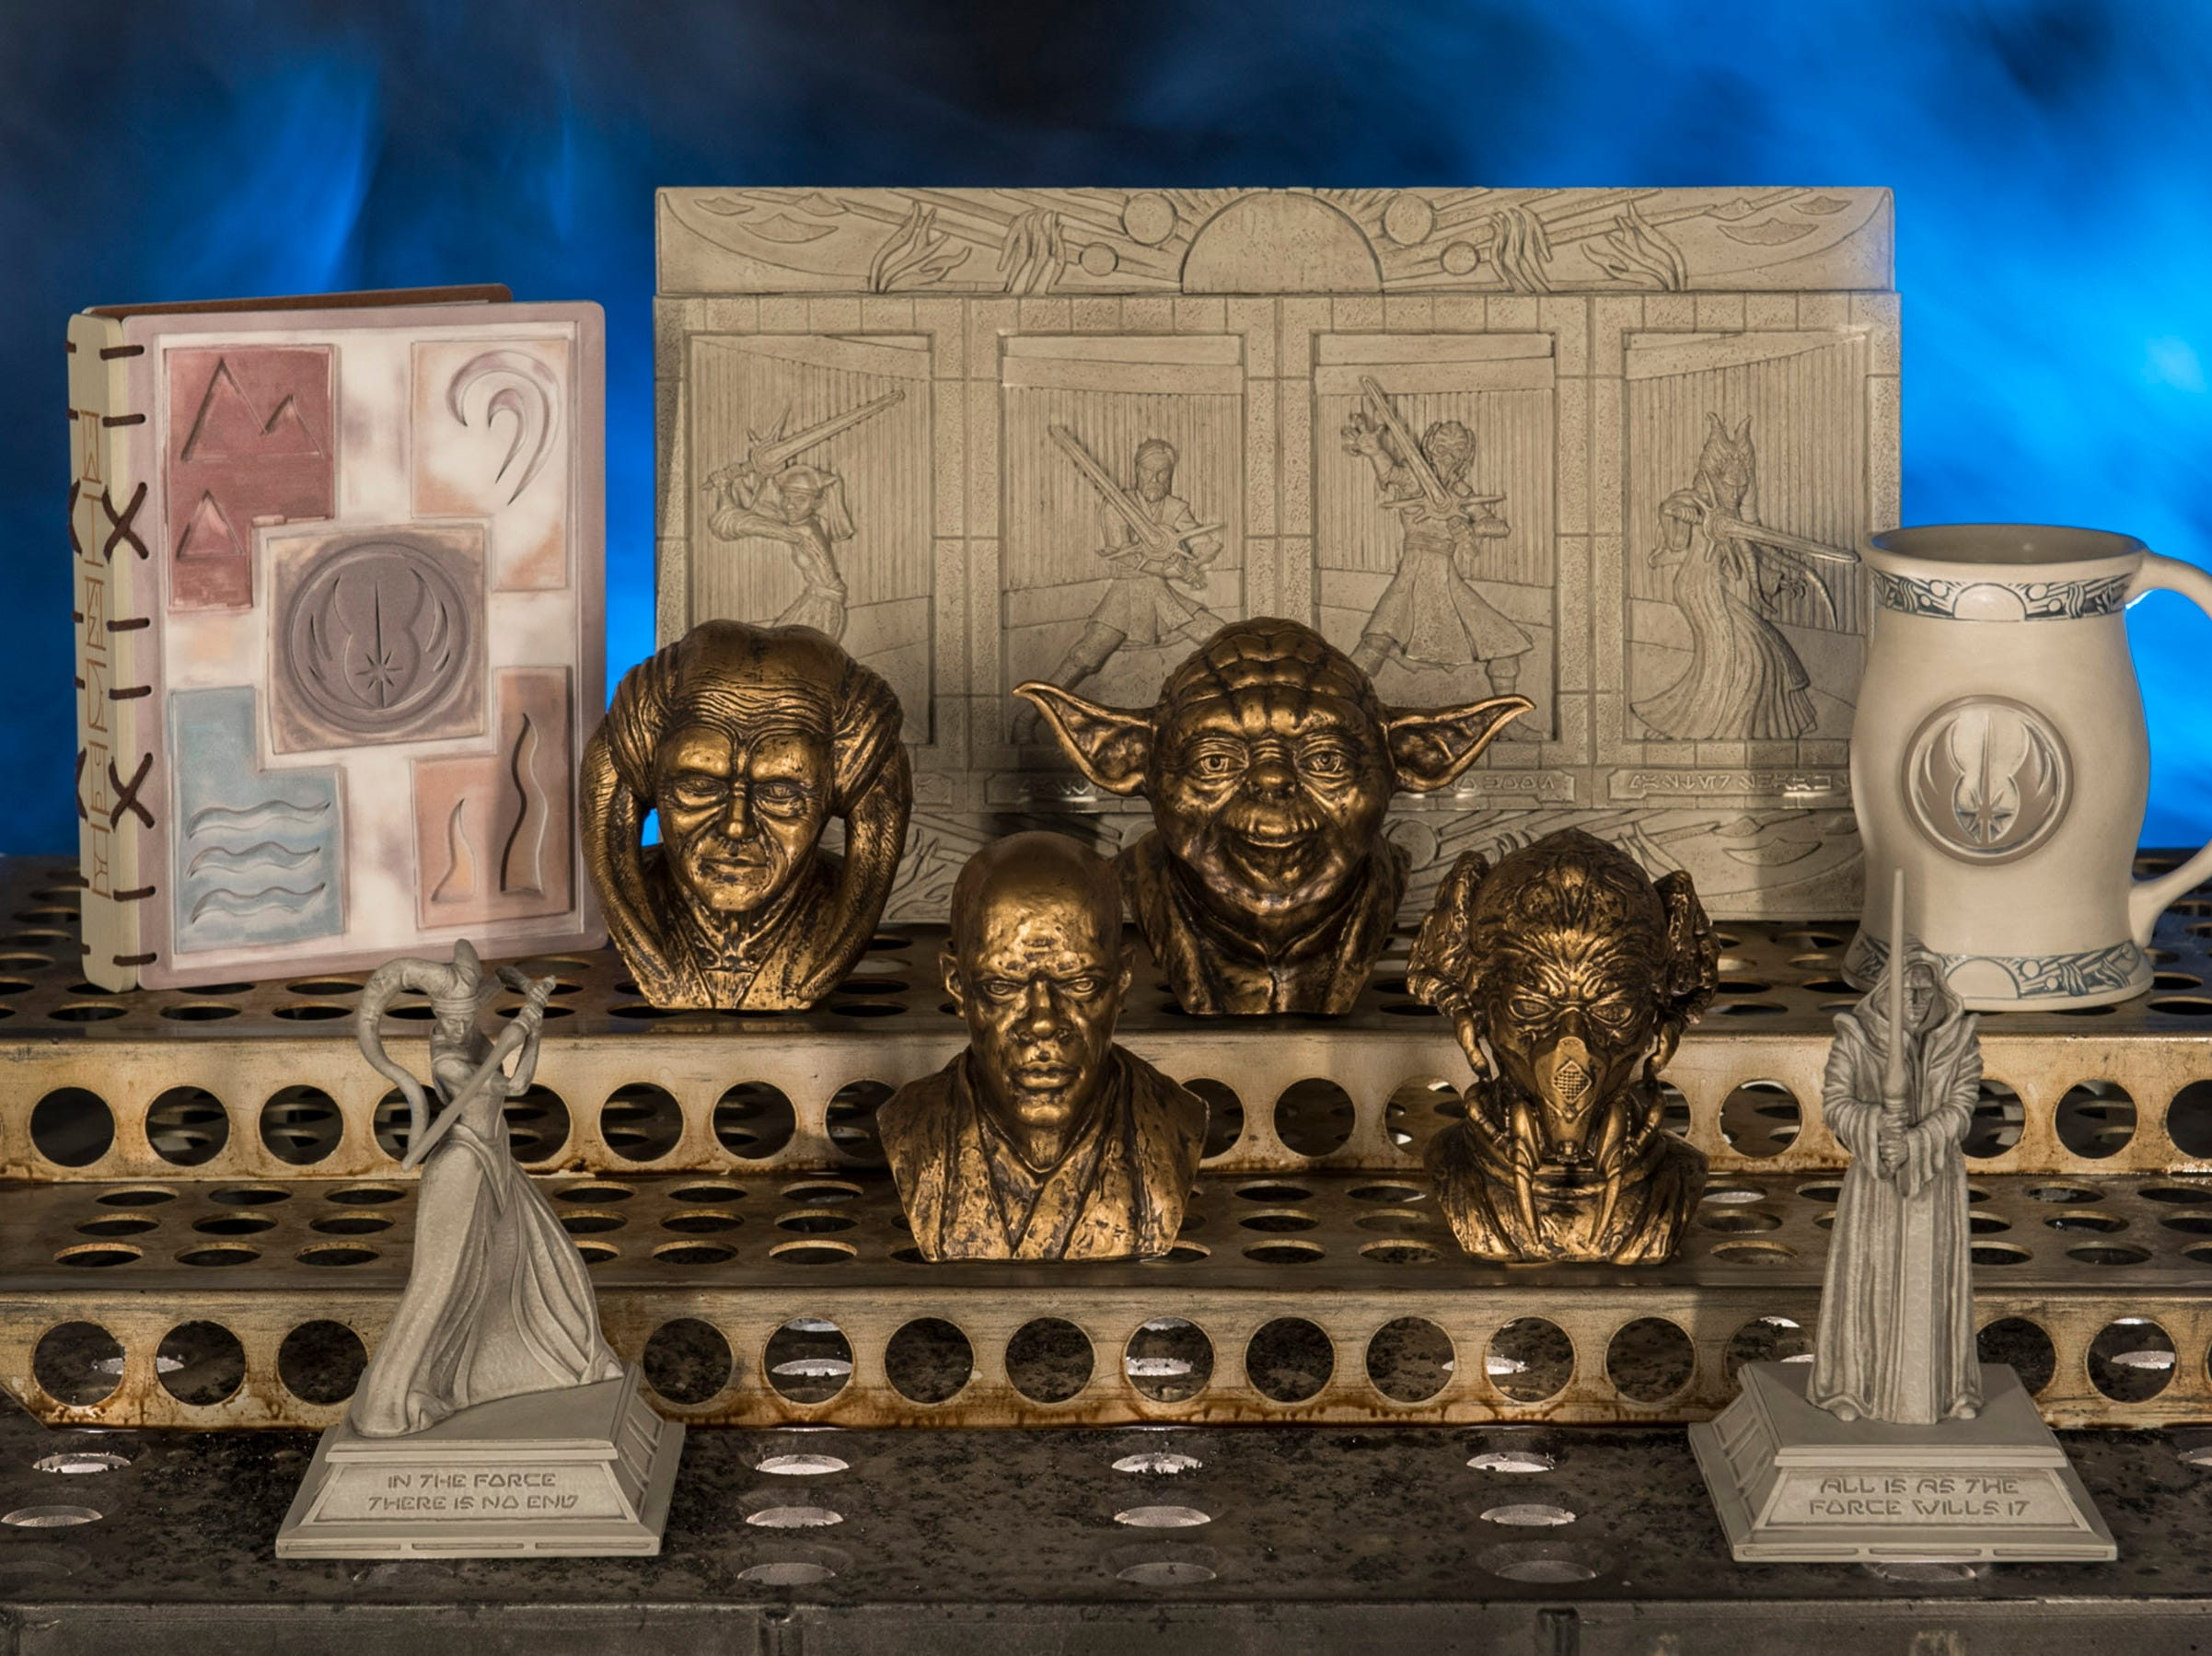 Disney guests will find rare and unique items at Dok-Ondar's Den of Antiquities in Star Wars: Galaxy's Edge, including the pictured Jedi artifacts.